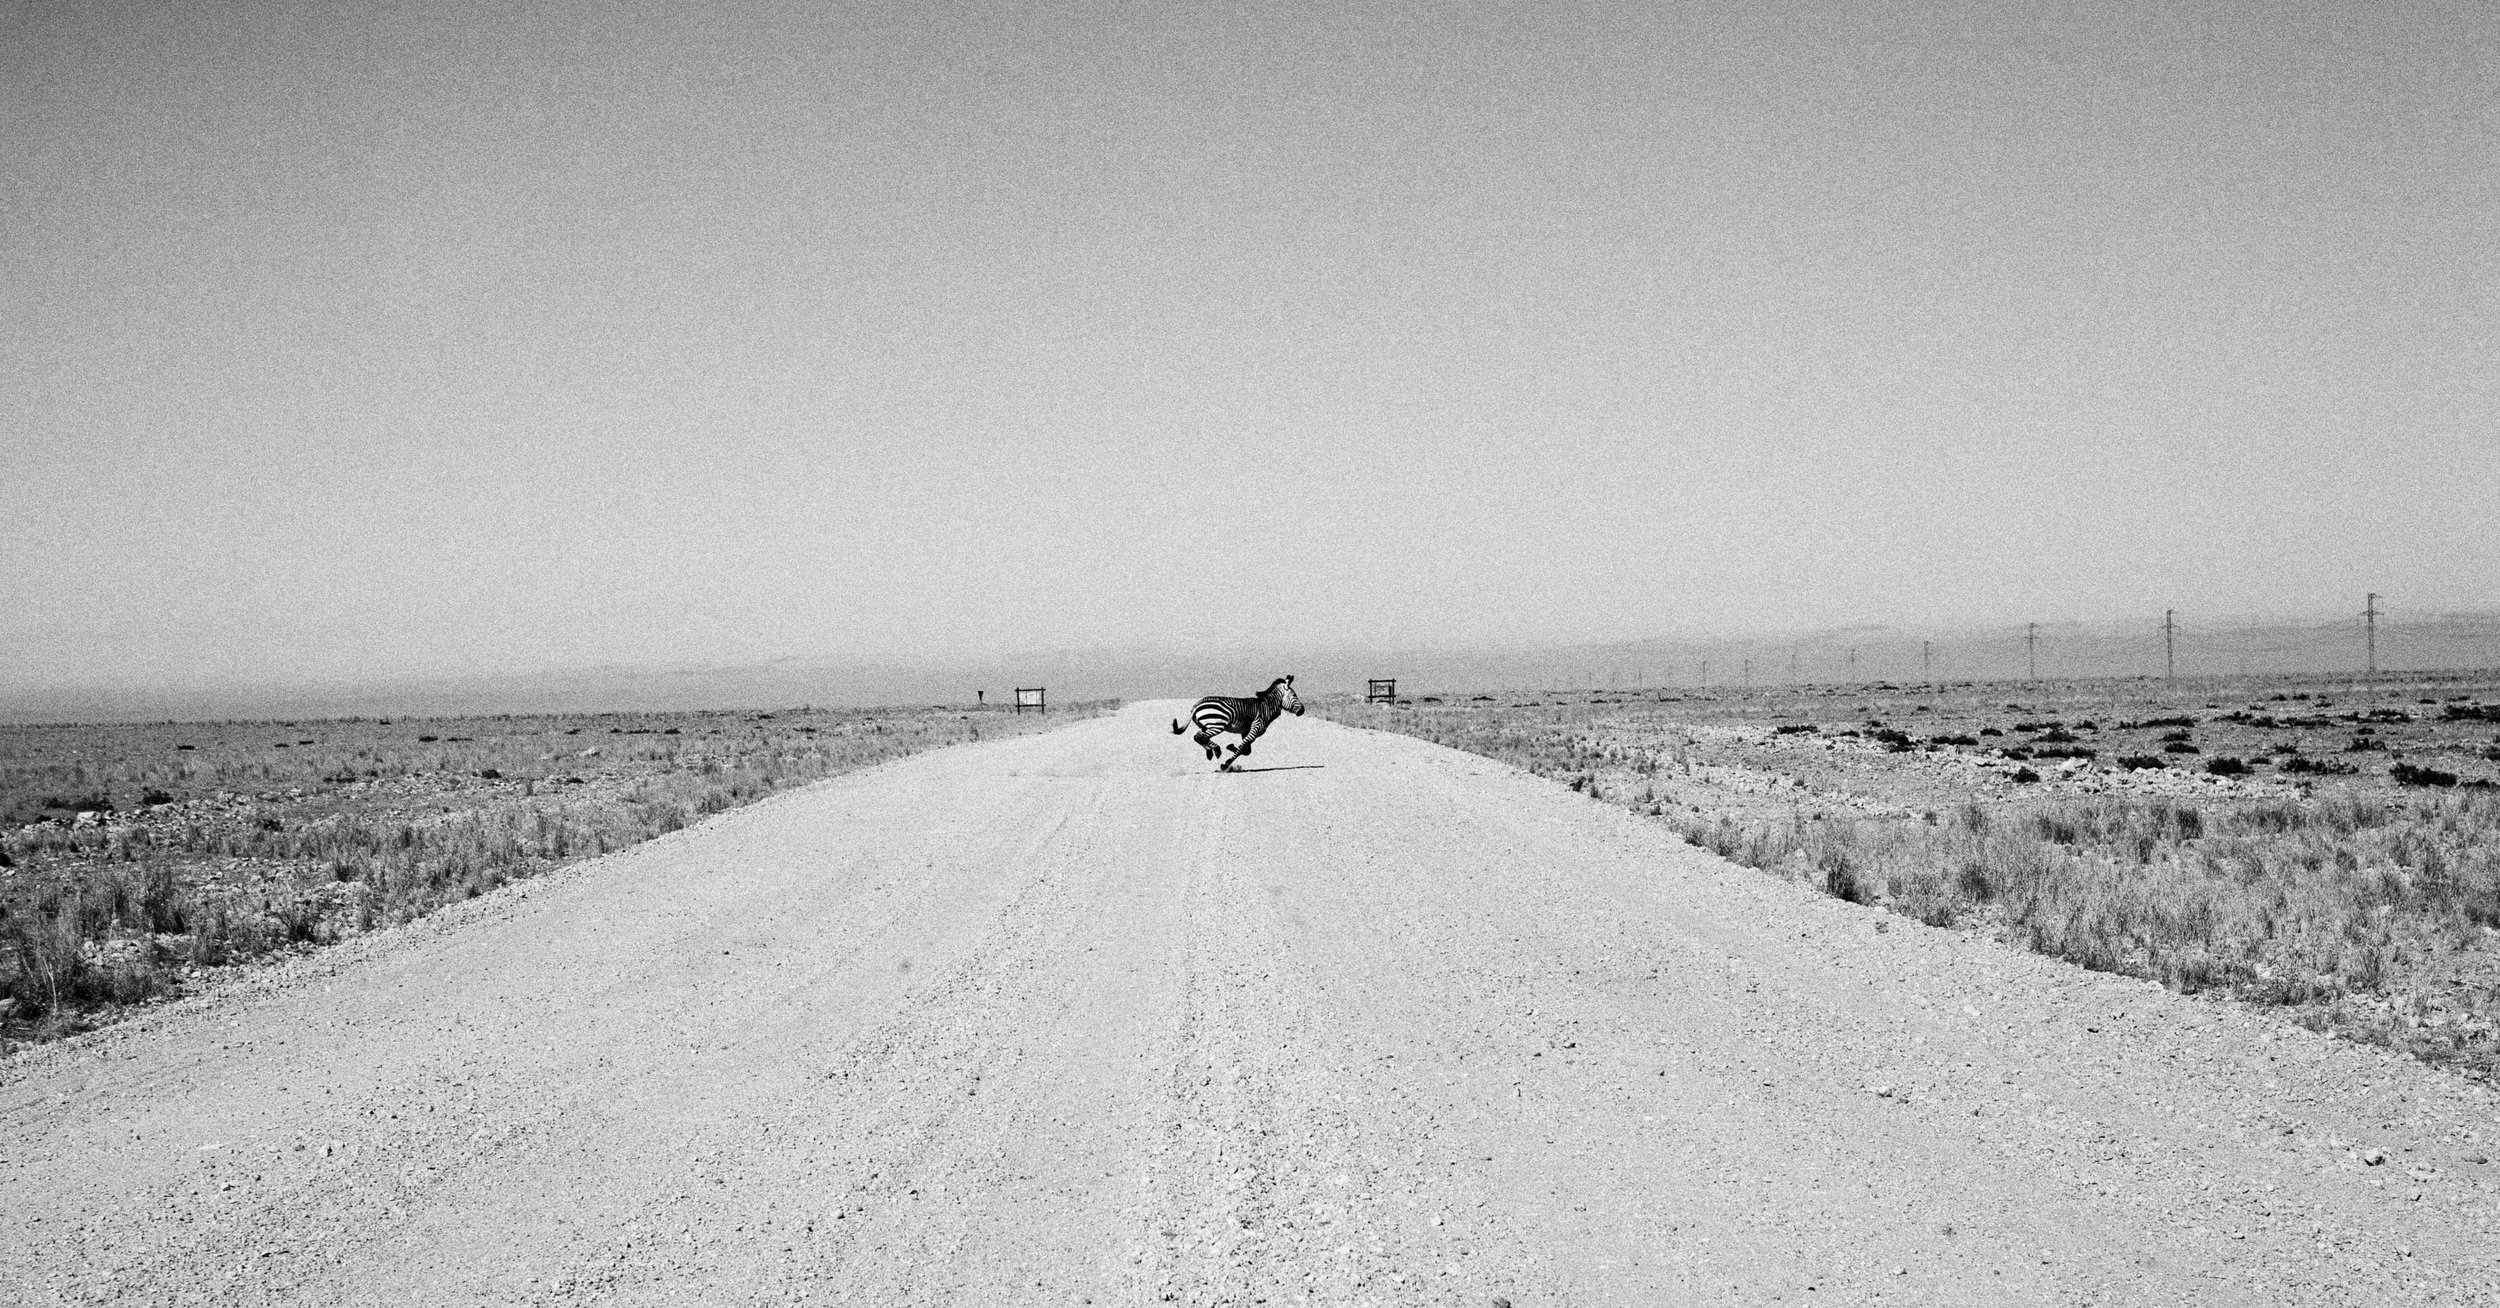 _MG_4812-zebra-running-bw2-crop-ig.jpg